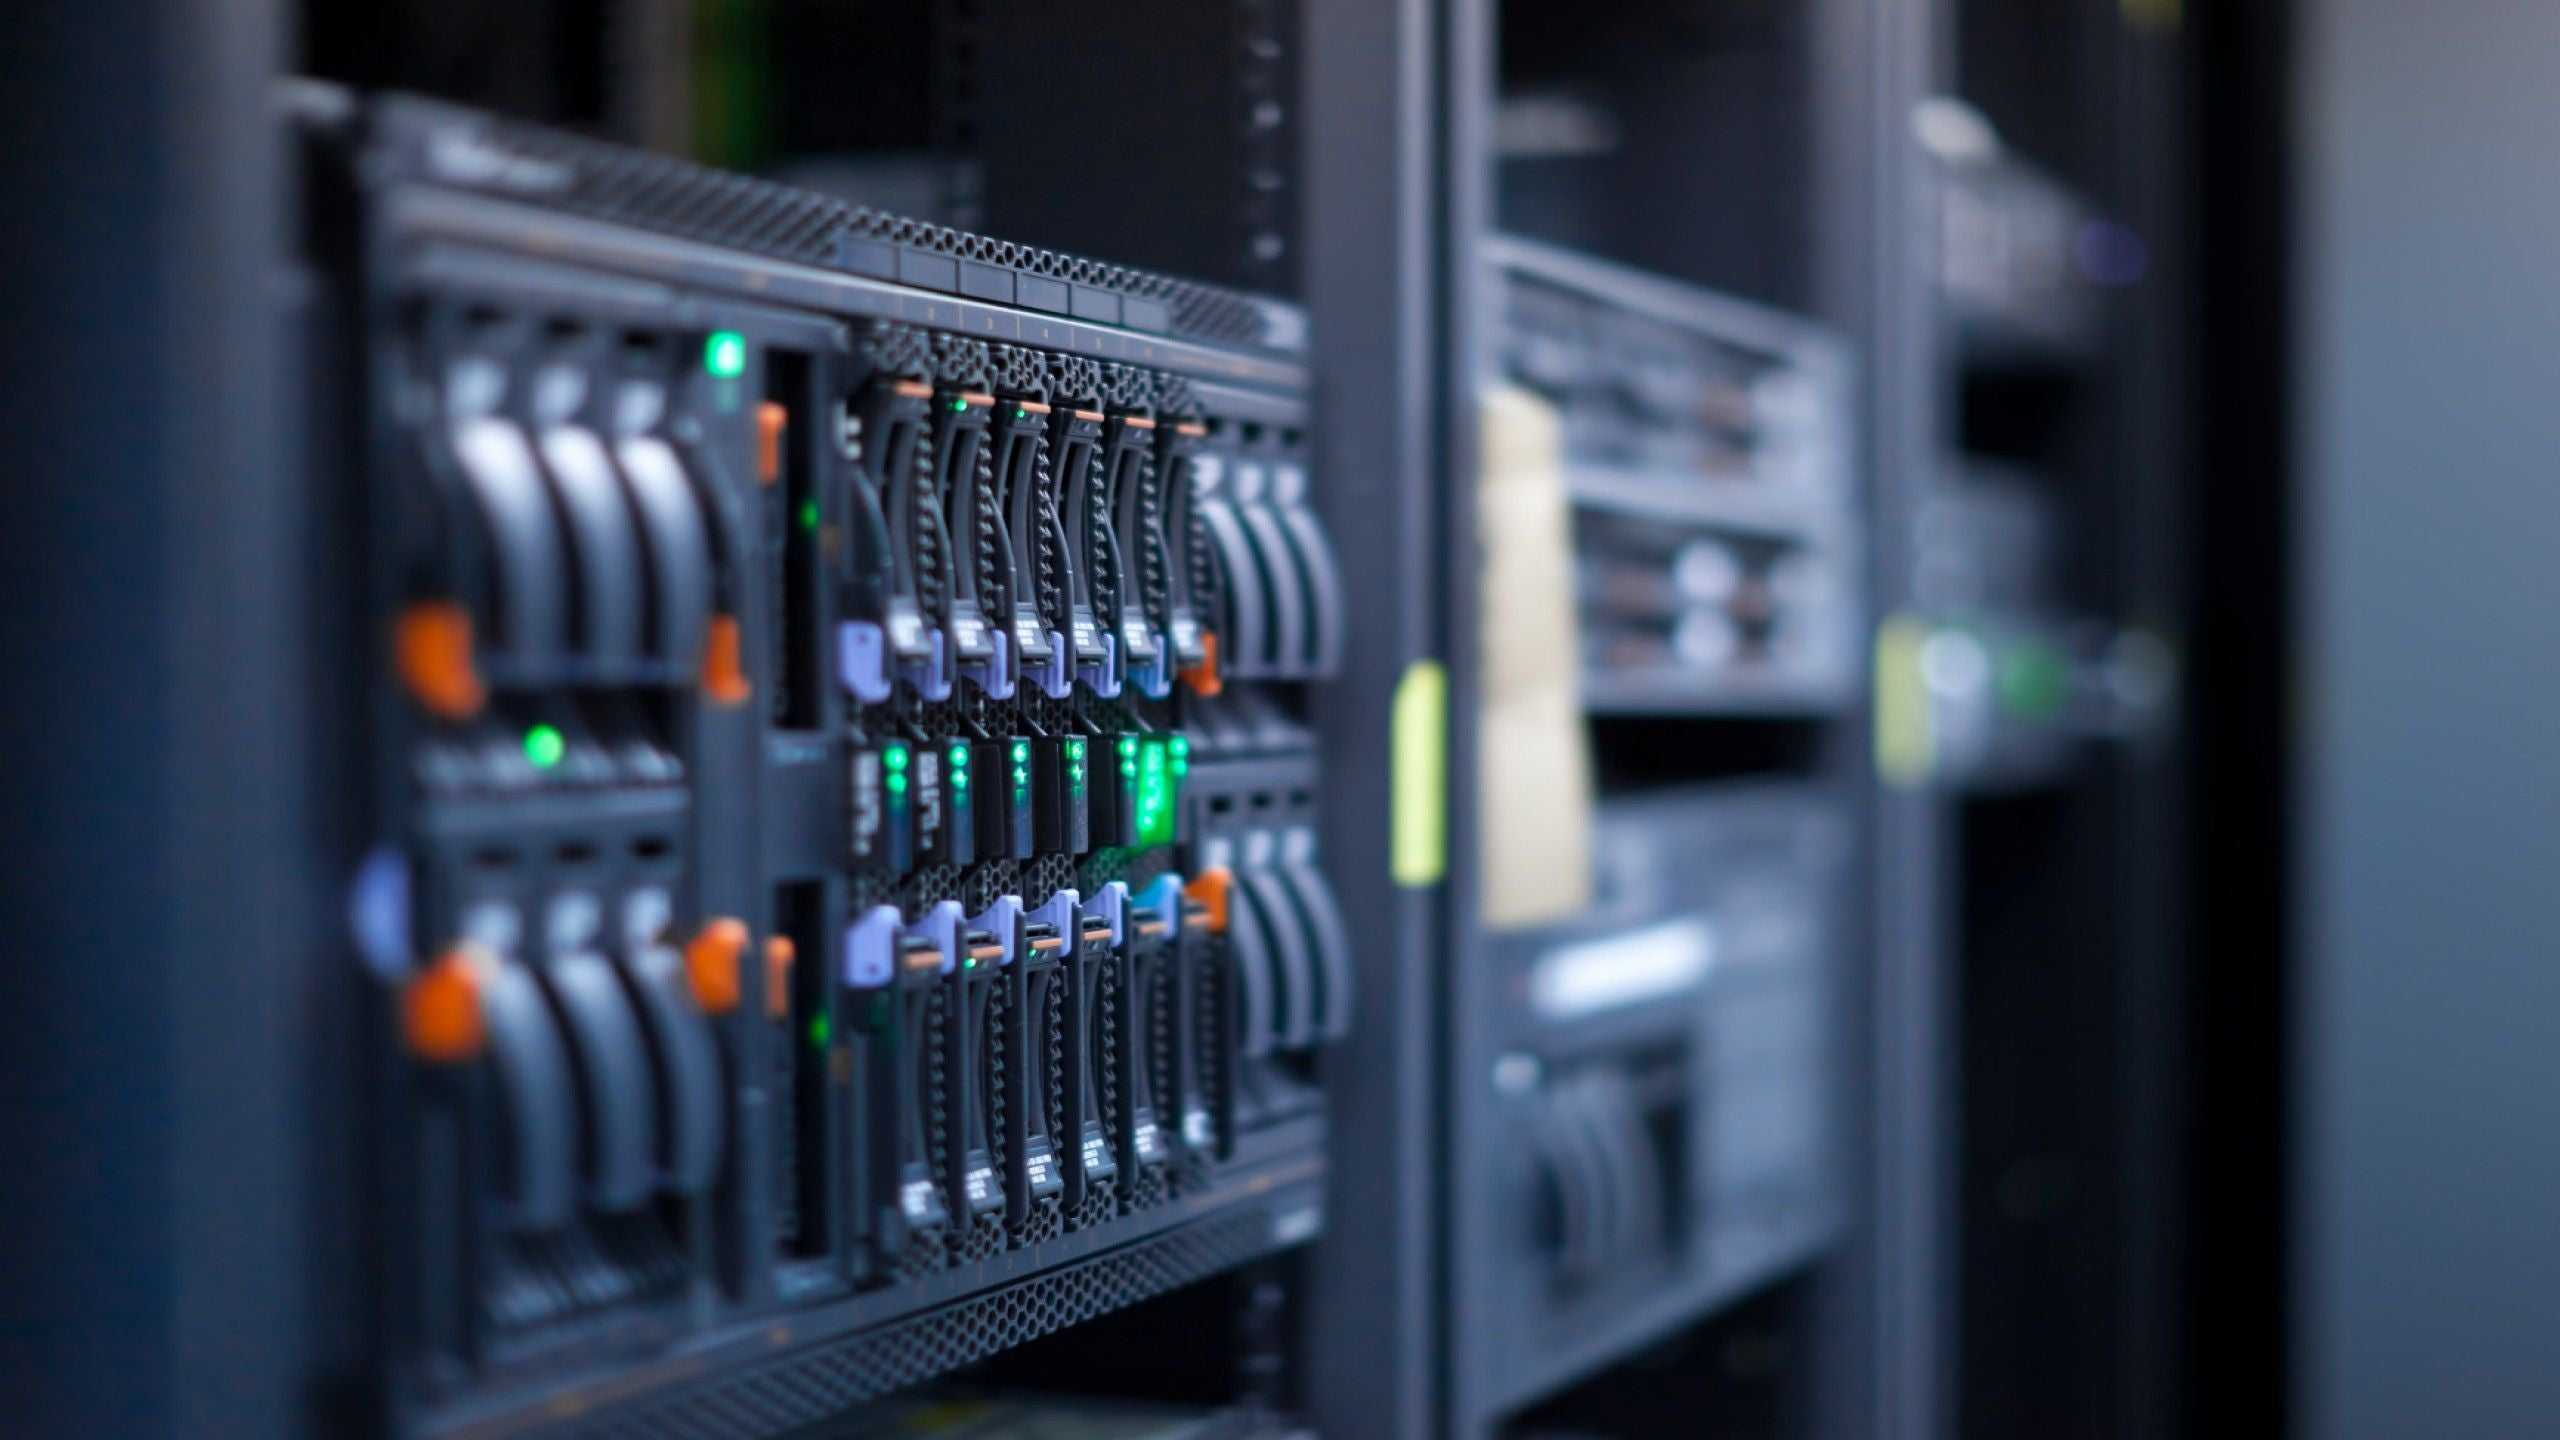 The Ultimate Guide To Win The Data Center Accelerator Market By 2023 - Market 4.0 News 2